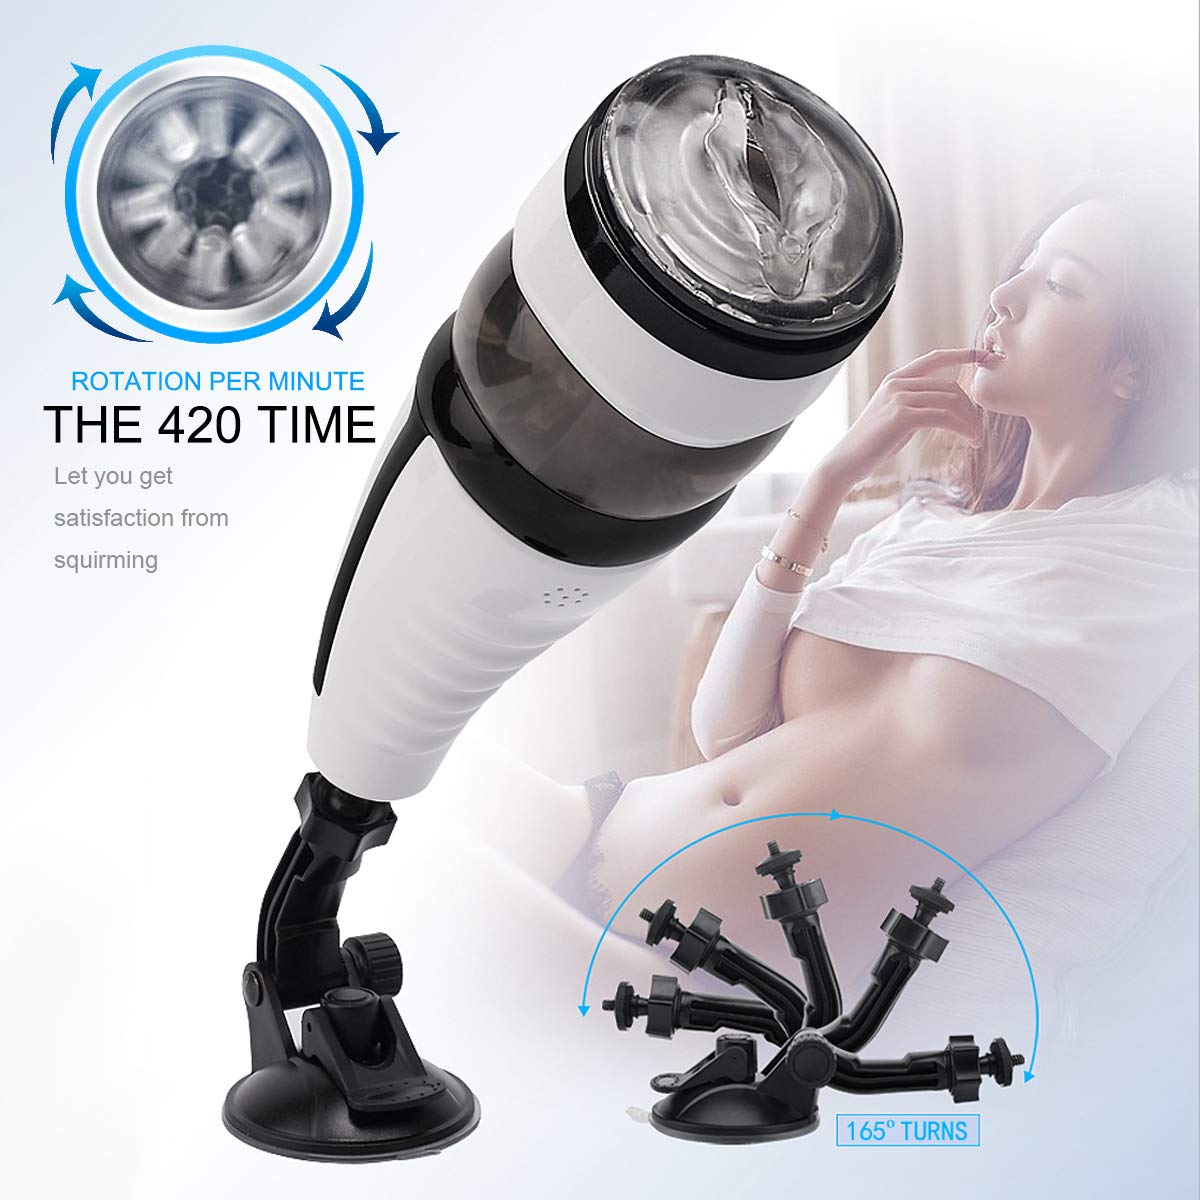 huaxiao66 Automatic Telescopic Sucking Male Massager Toys for Men Heating Realistic Products Toys Tshirt,Deluxe Wearable Adullt Toys Six Toys for Male Tshirt